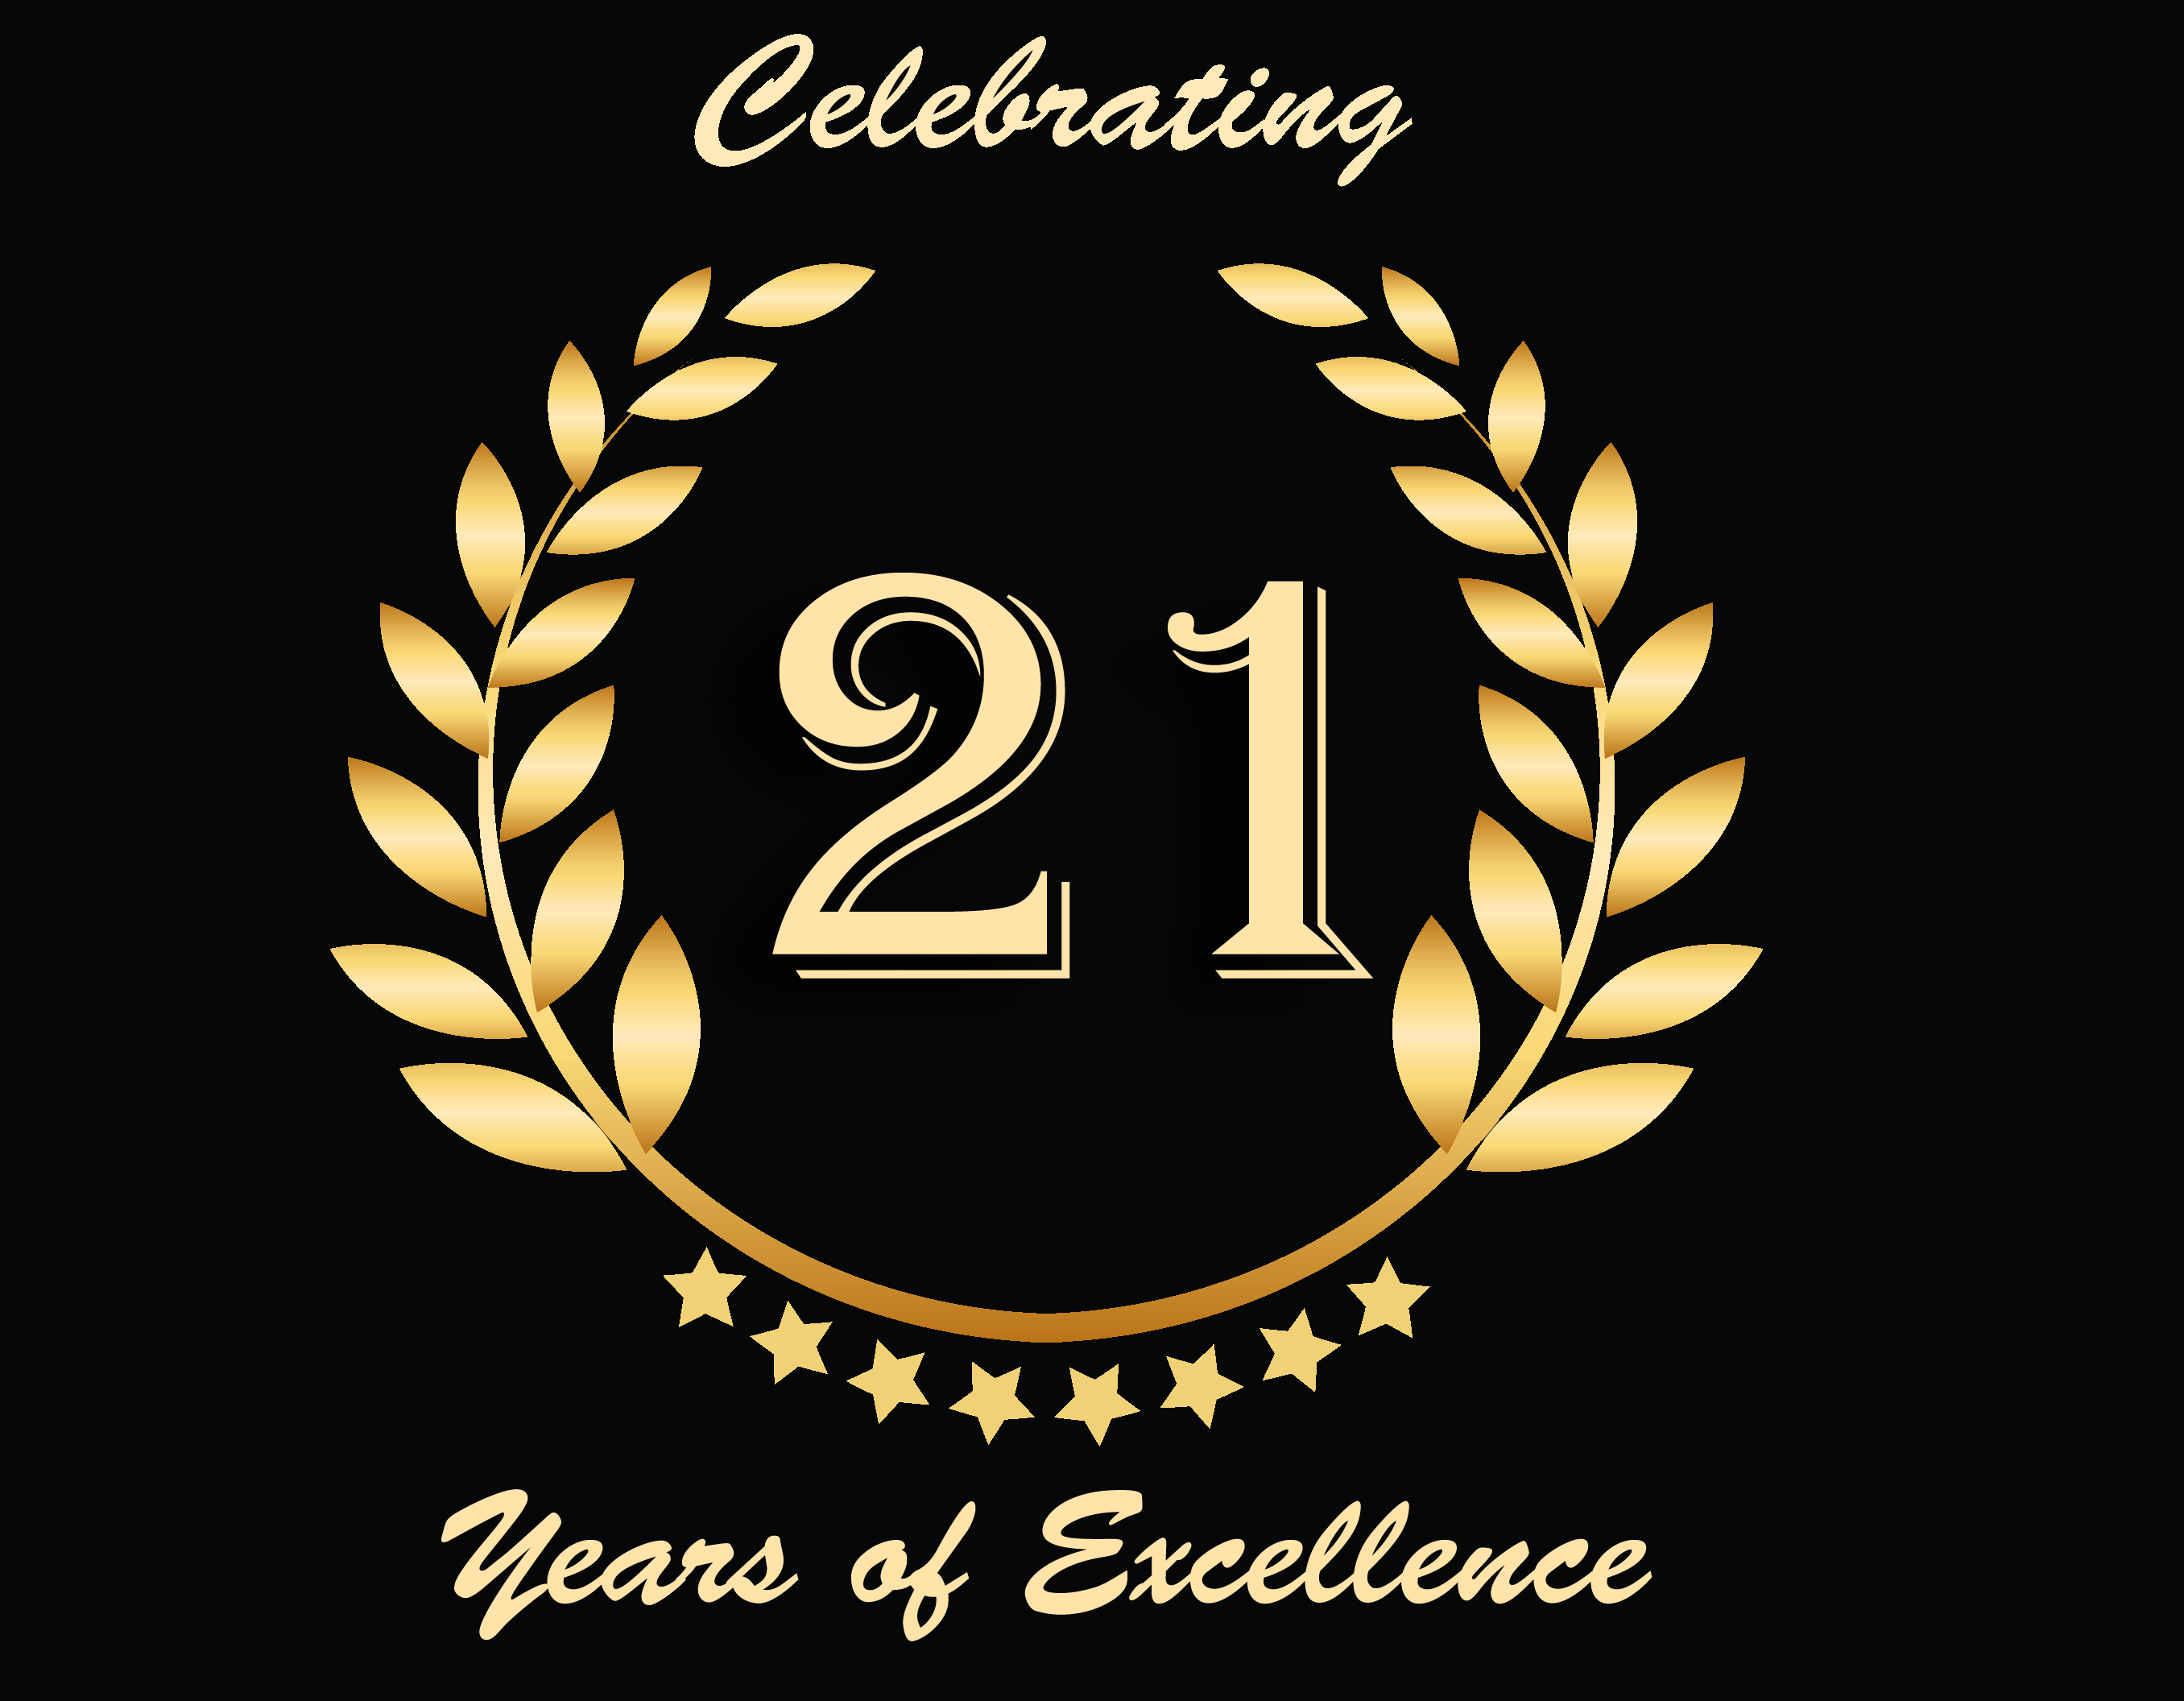 We are celebrating 21 Years of excellence in education